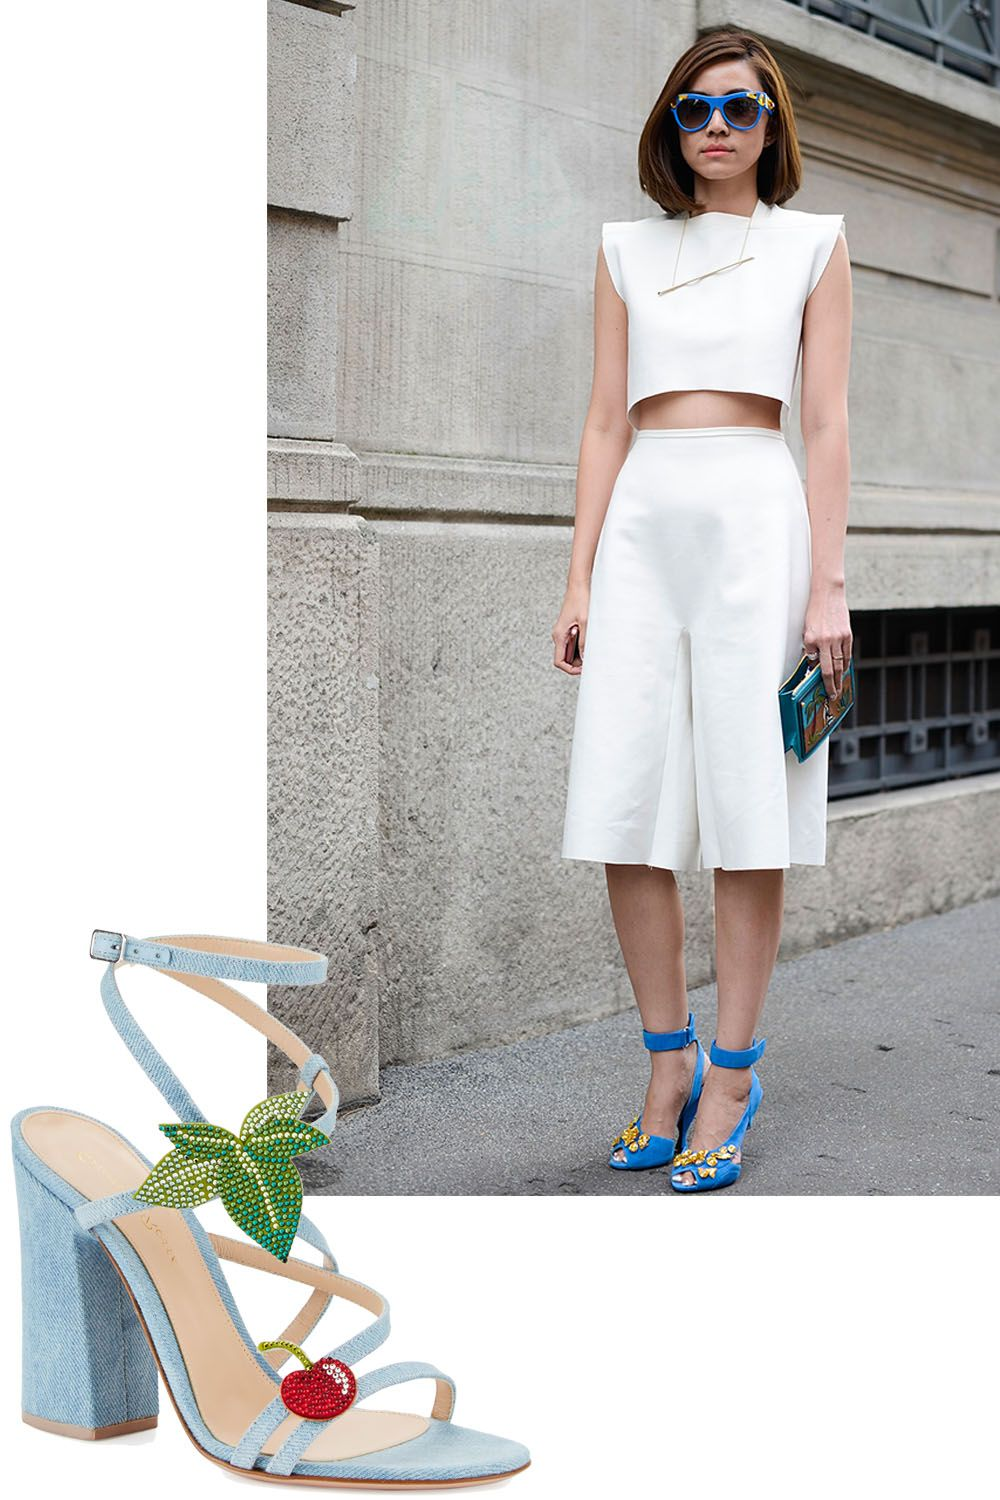 "<p>Instant update to&nbsp&#x3B;your spring uniform.&nbsp&#x3B;</p><p><em data-verified=""redactor"" data-redactor-tag=""em"">Gianvito Rossi sandal, $1,265, <a href=""http://www.neimanmarcus.com/Gianvito-Rossi-Cherry-Denim-Strappy-100mm-Sandal-Blue-Shoes/prod195780211_cat56520750__/p.prod?icid=home0b_SpringShoes_020717&amp&#x3B;searchType=EndecaDrivenCat&amp&#x3B;rte=%252Fcategory.jsp%253FitemId%253Dcat56520750%2526pageSize%253D117%2526No%253D0%2526refinements%253D&amp&#x3B;eItemId=prod195780211&amp&#x3B;cmCat=product"" data-tracking-id=""recirc-text-link"">neimanmarcus.com</a>.</em><br></p>"